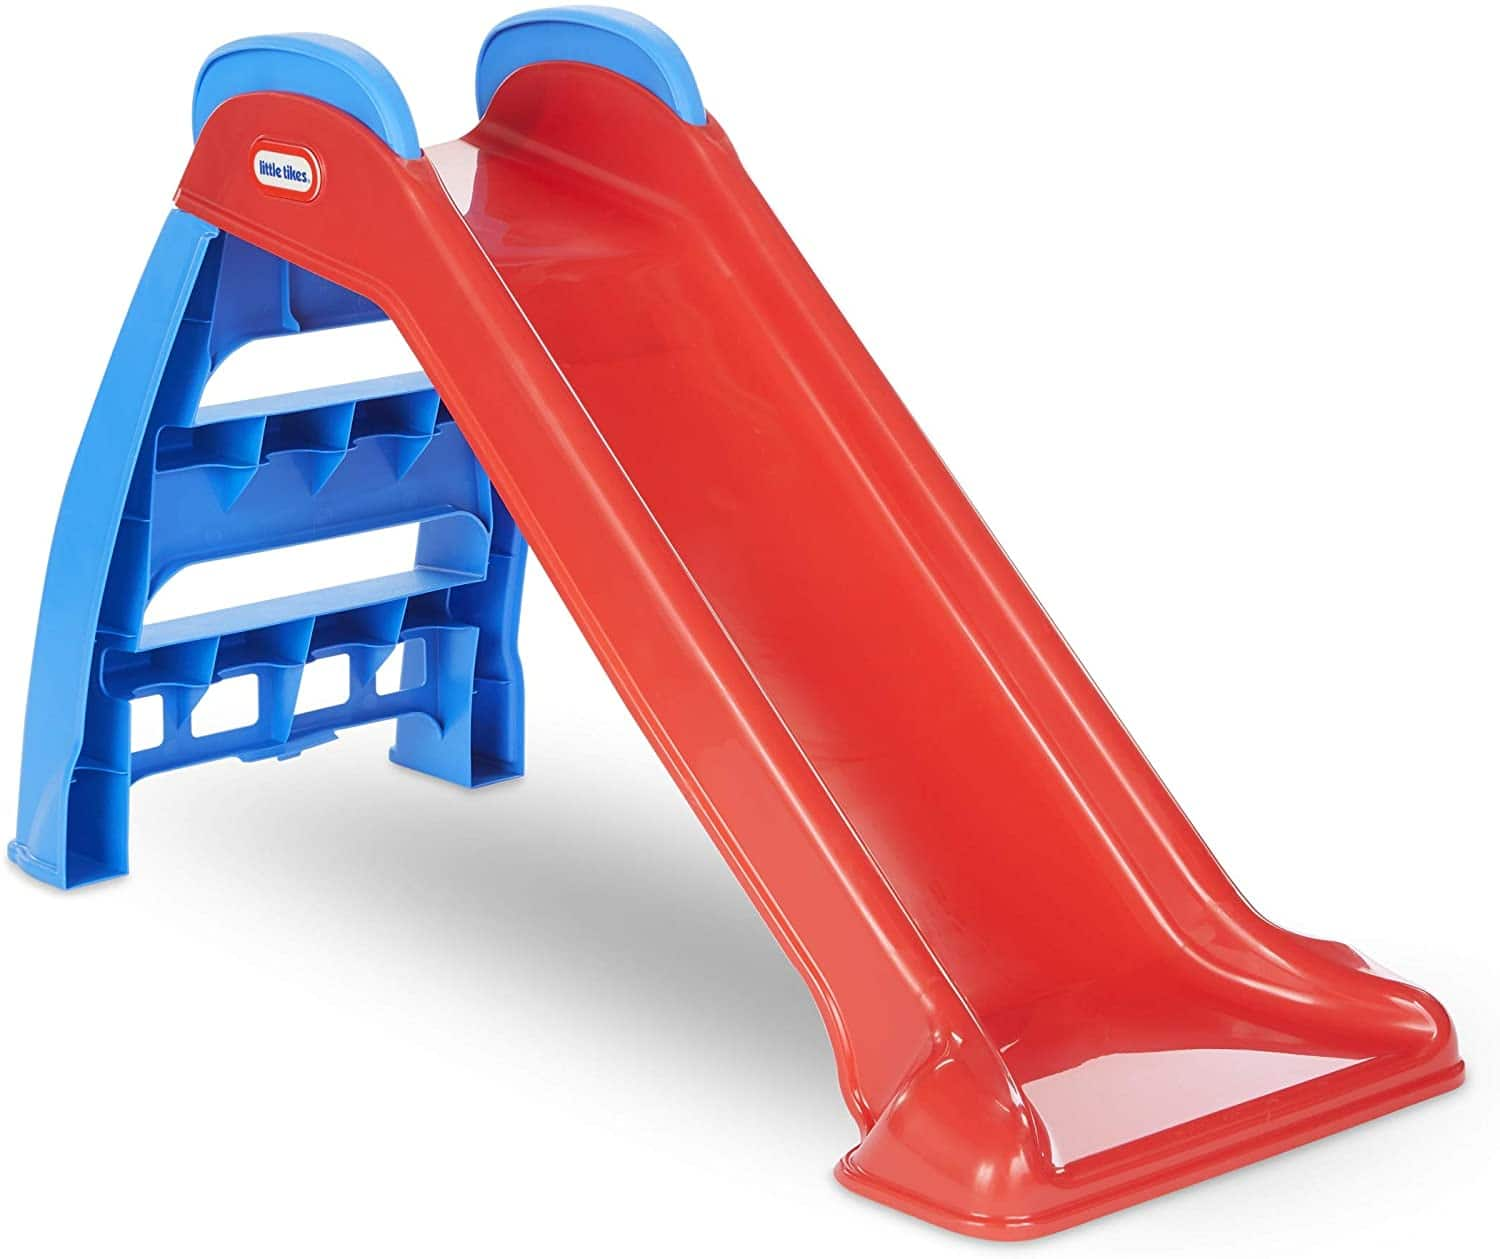 Little Tikes First Slide Toddler Slide (Red/Blue) $17.50 + Free Shipping w/ Prime or $25+